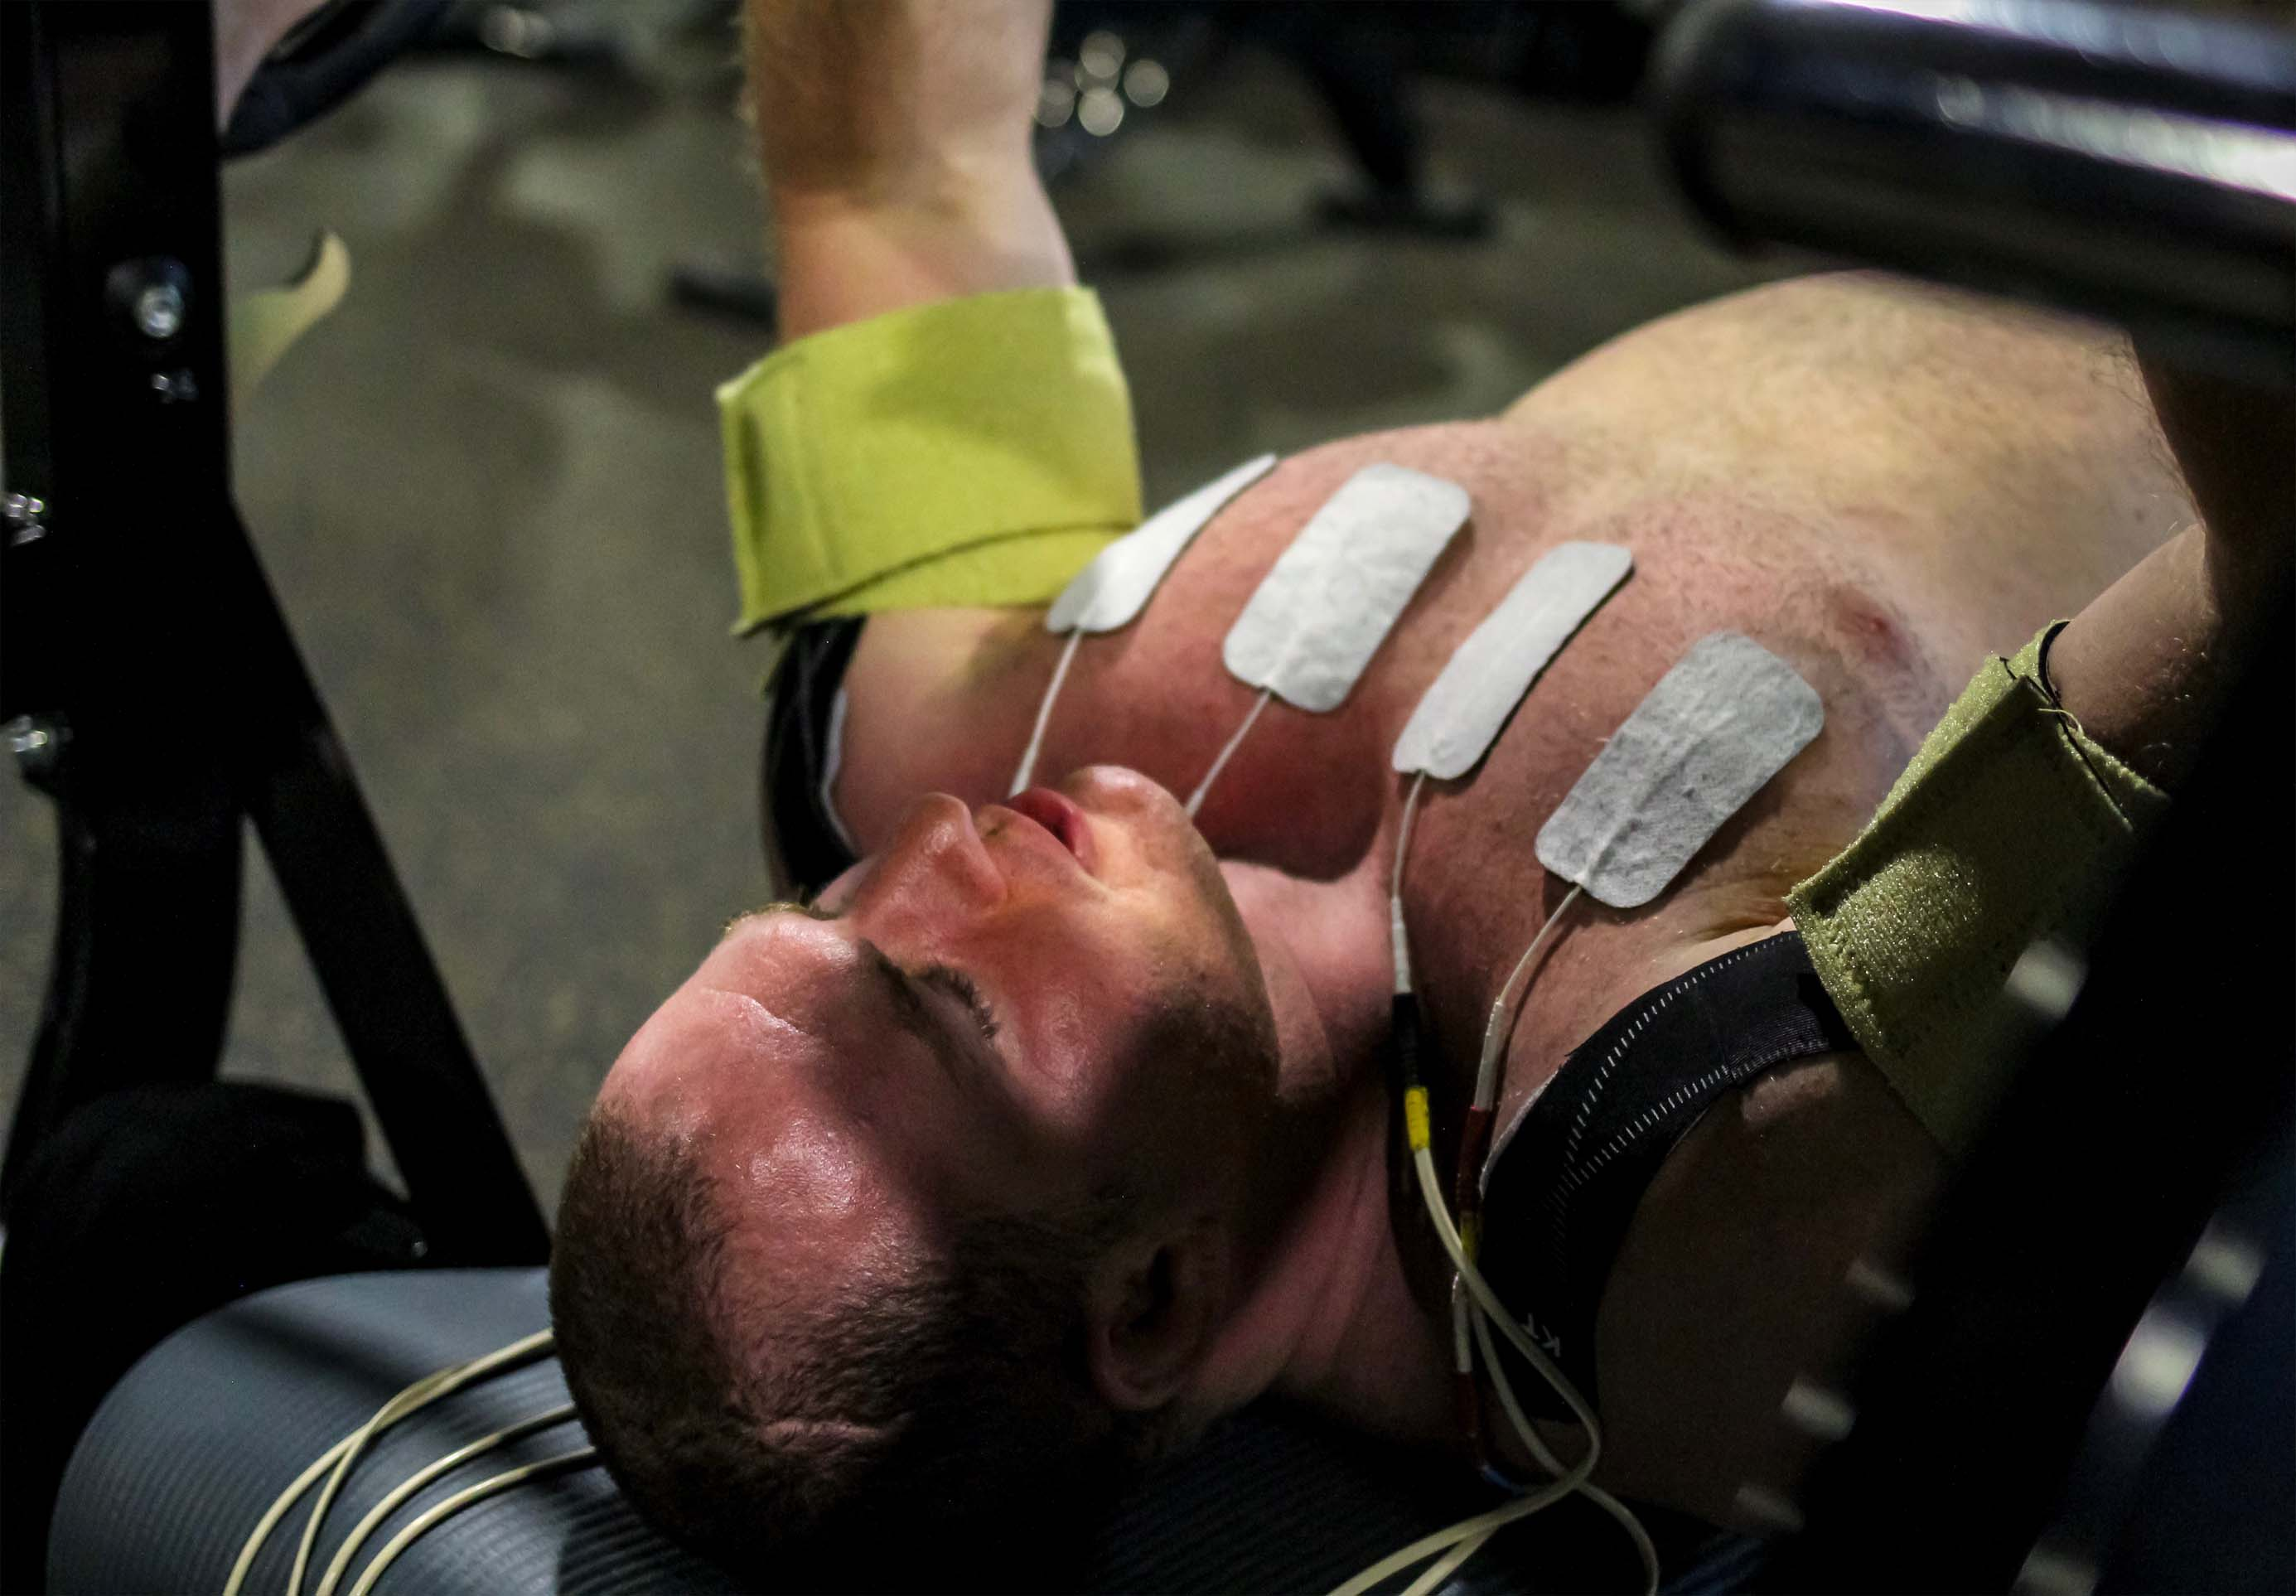 NEW Device Improves Injury, Increases Muscle Mass And Endurance: Neuro Biological Stimulation For Healing And Function